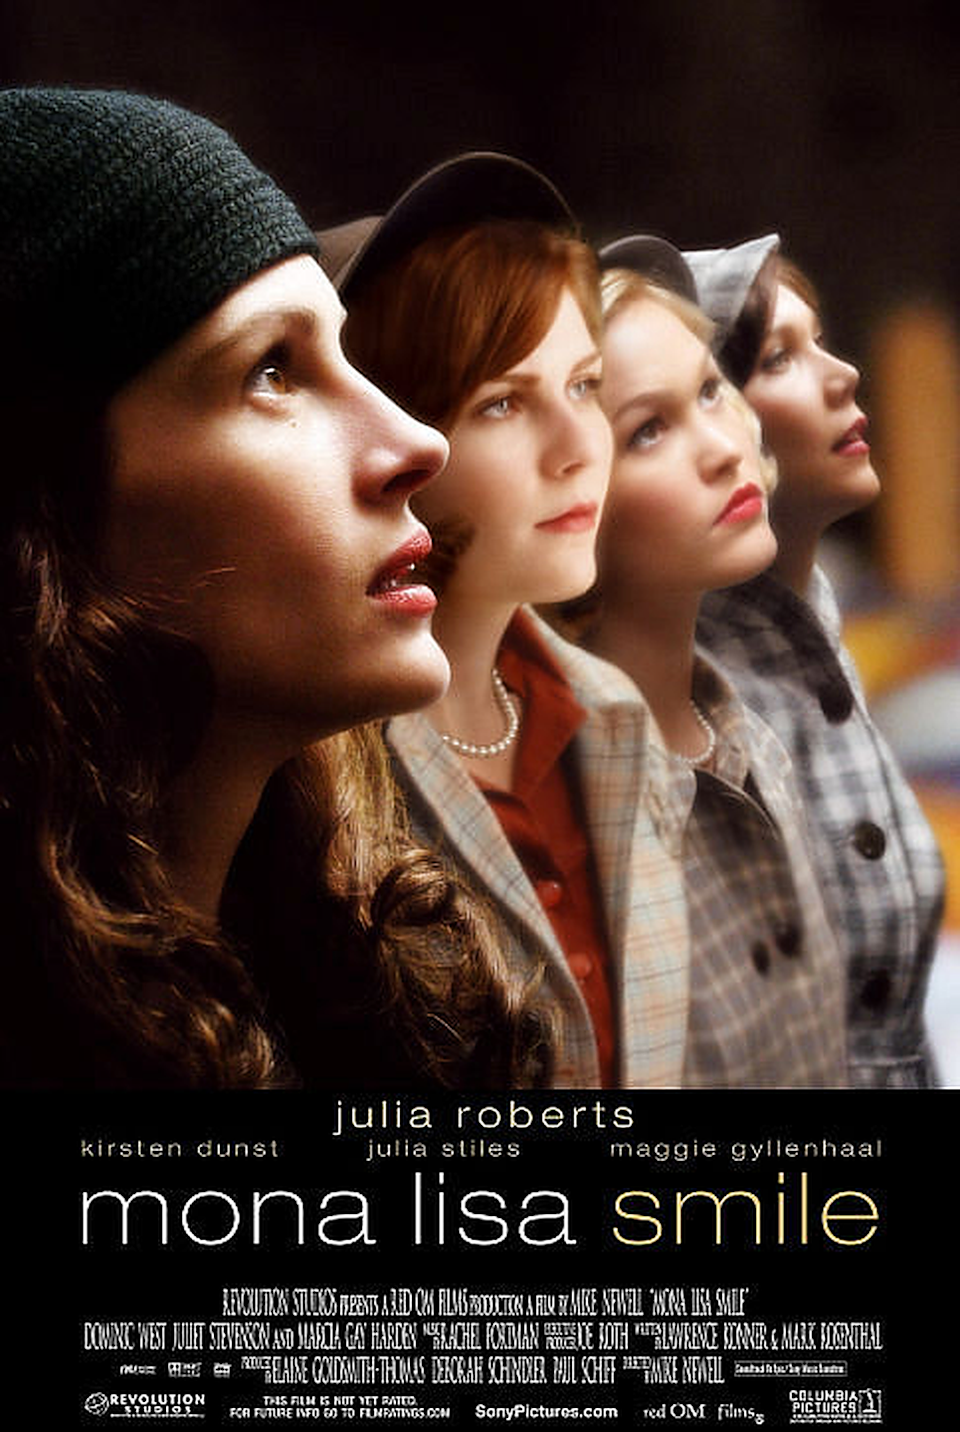 """<p>Set in 1953, this film follows Katherine (<strong>Julia Roberts</strong>), a recent UCLA graduate student who gets hired to teach art history at the prestigious all-female university Wellesley College. She inspires many students, including Betty (<strong>Kirsten Dunst</strong>) and Joan (<strong>Julia Stiles</strong>), leading to unexpected twists and turns.</p><p><a class=""""link rapid-noclick-resp"""" href=""""https://www.amazon.com/Mona-Lisa-Smile-Ginnifer-Goodwin/dp/B000JD1CBY/ref=sr_1_1?dchild=1&keywords=MONA+LISA+SMILE&qid=1596922814&sr=8-1&tag=syn-yahoo-20&ascsubtag=%5Bartid%7C10055.g.33513354%5Bsrc%7Cyahoo-us"""" rel=""""nofollow noopener"""" target=""""_blank"""" data-ylk=""""slk:WATCH NOW"""">WATCH NOW</a></p>"""